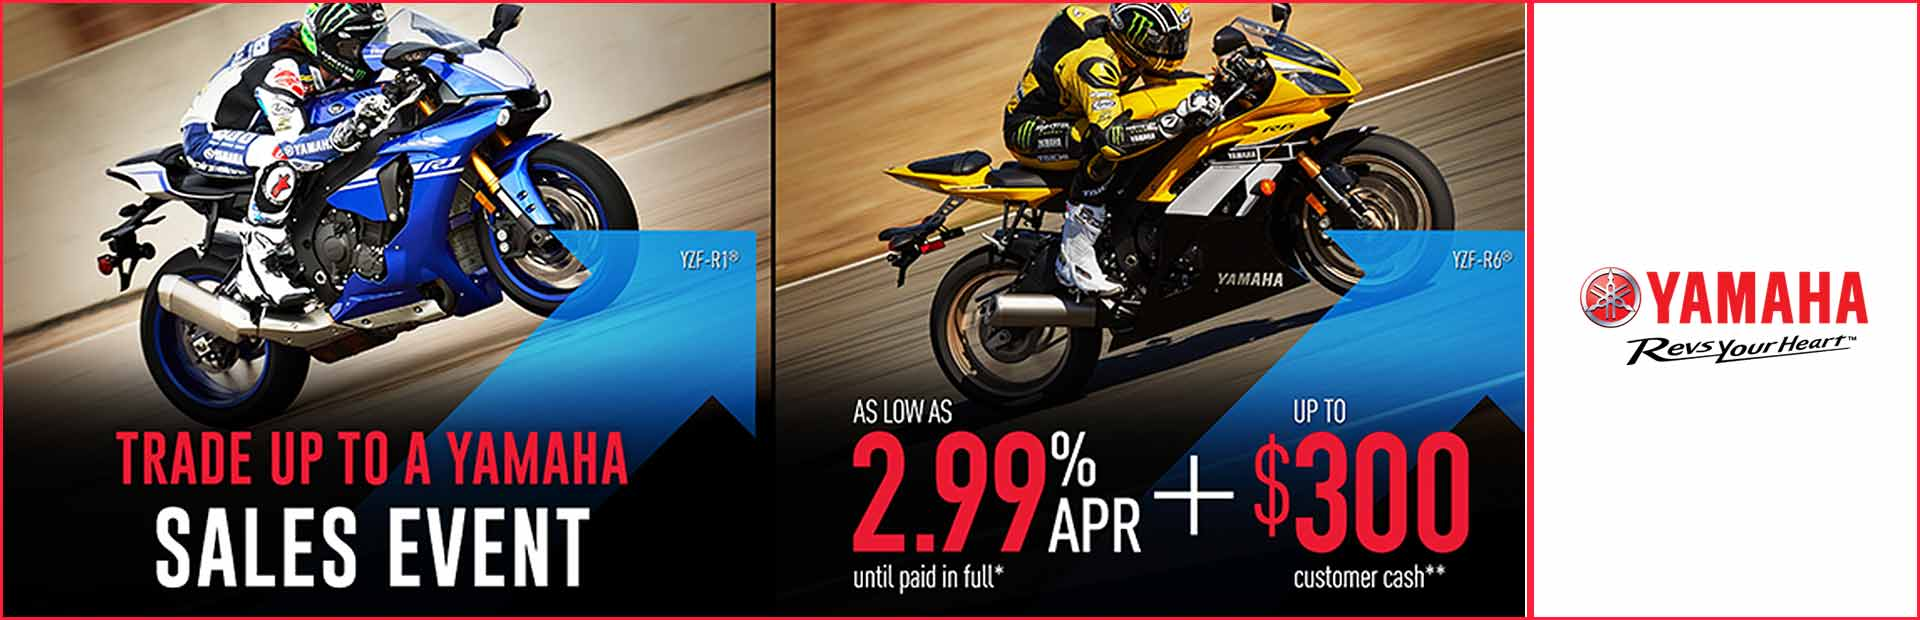 Yamaha: As Low As 2.99% APR + Up To $300 Customer Cash**